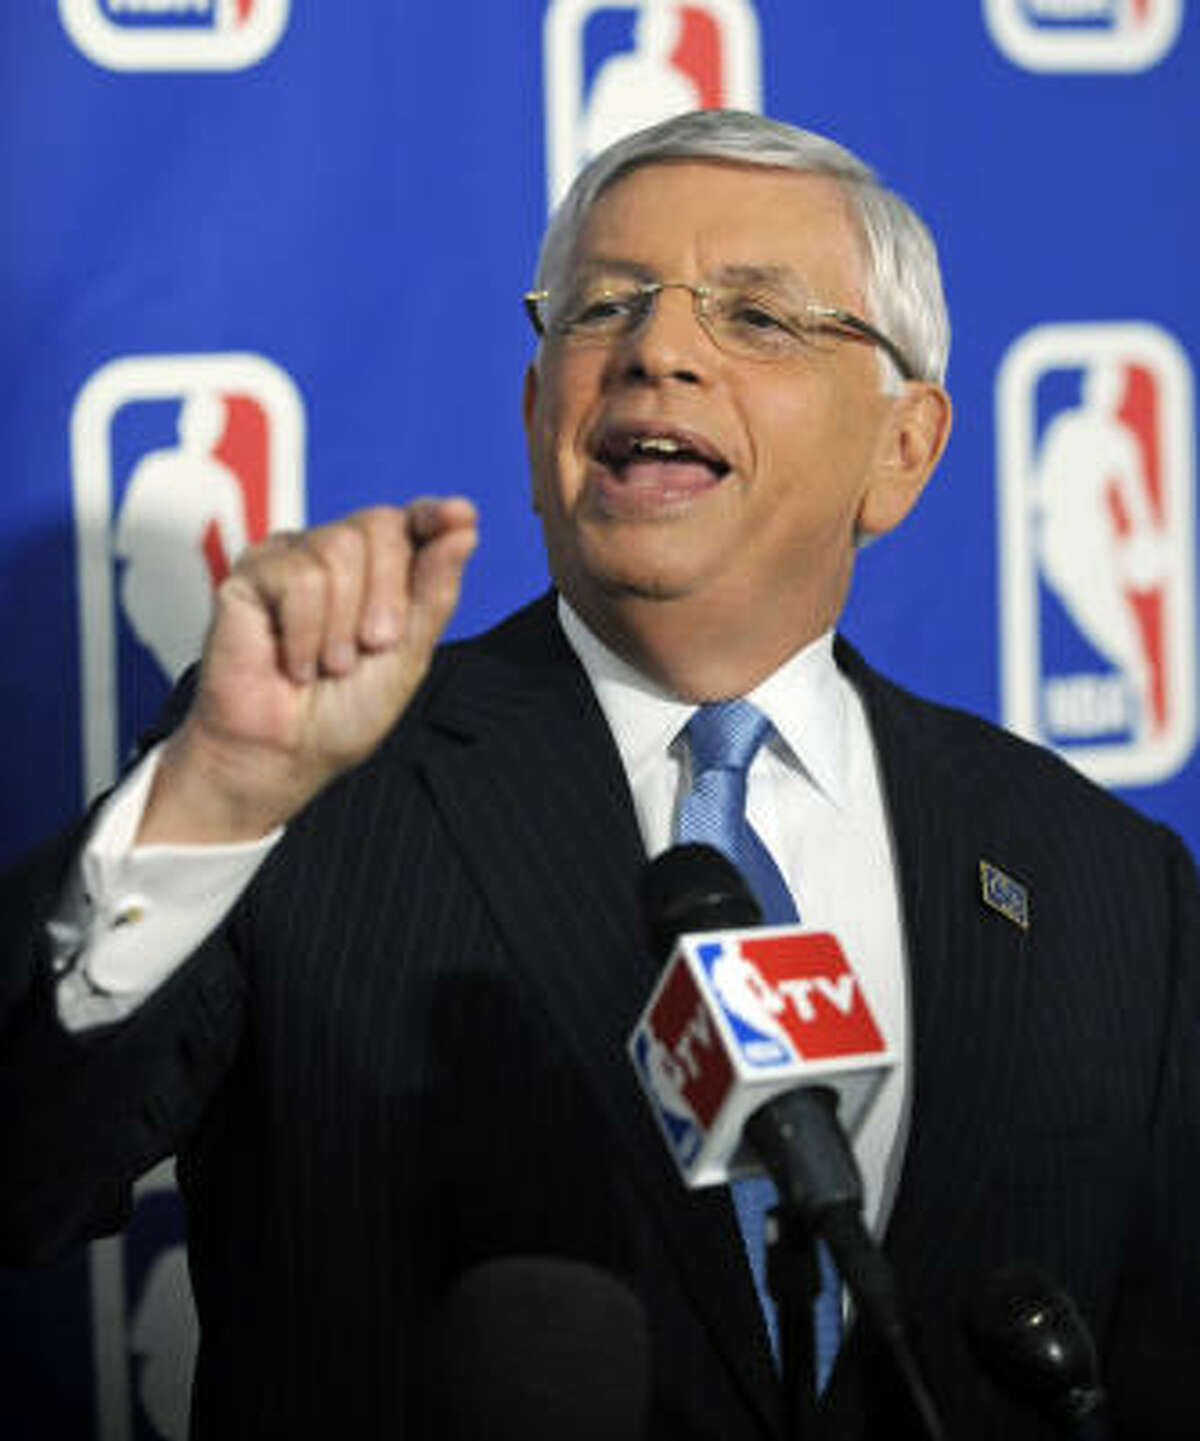 NBA commissioner David Stern talks to the media prior to the NBA draft lottery Tuesday.